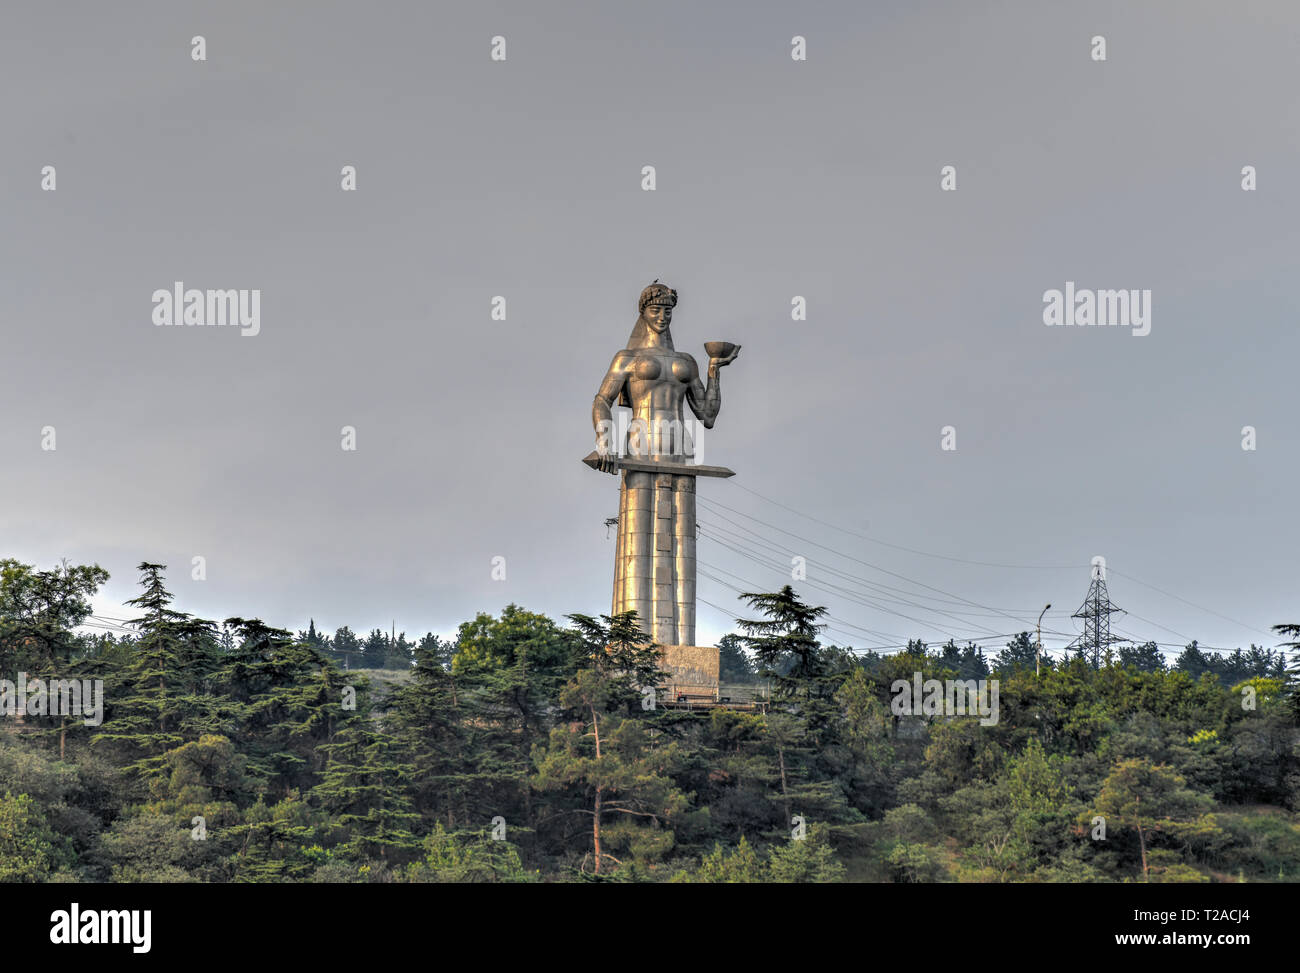 Kartlis Deda (Mother of a Georgian) monument in Tbilisi, Georgia. The statue was erected on the top of Sololaki hill in 1958, the year Tbilisi celebra Stock Photo